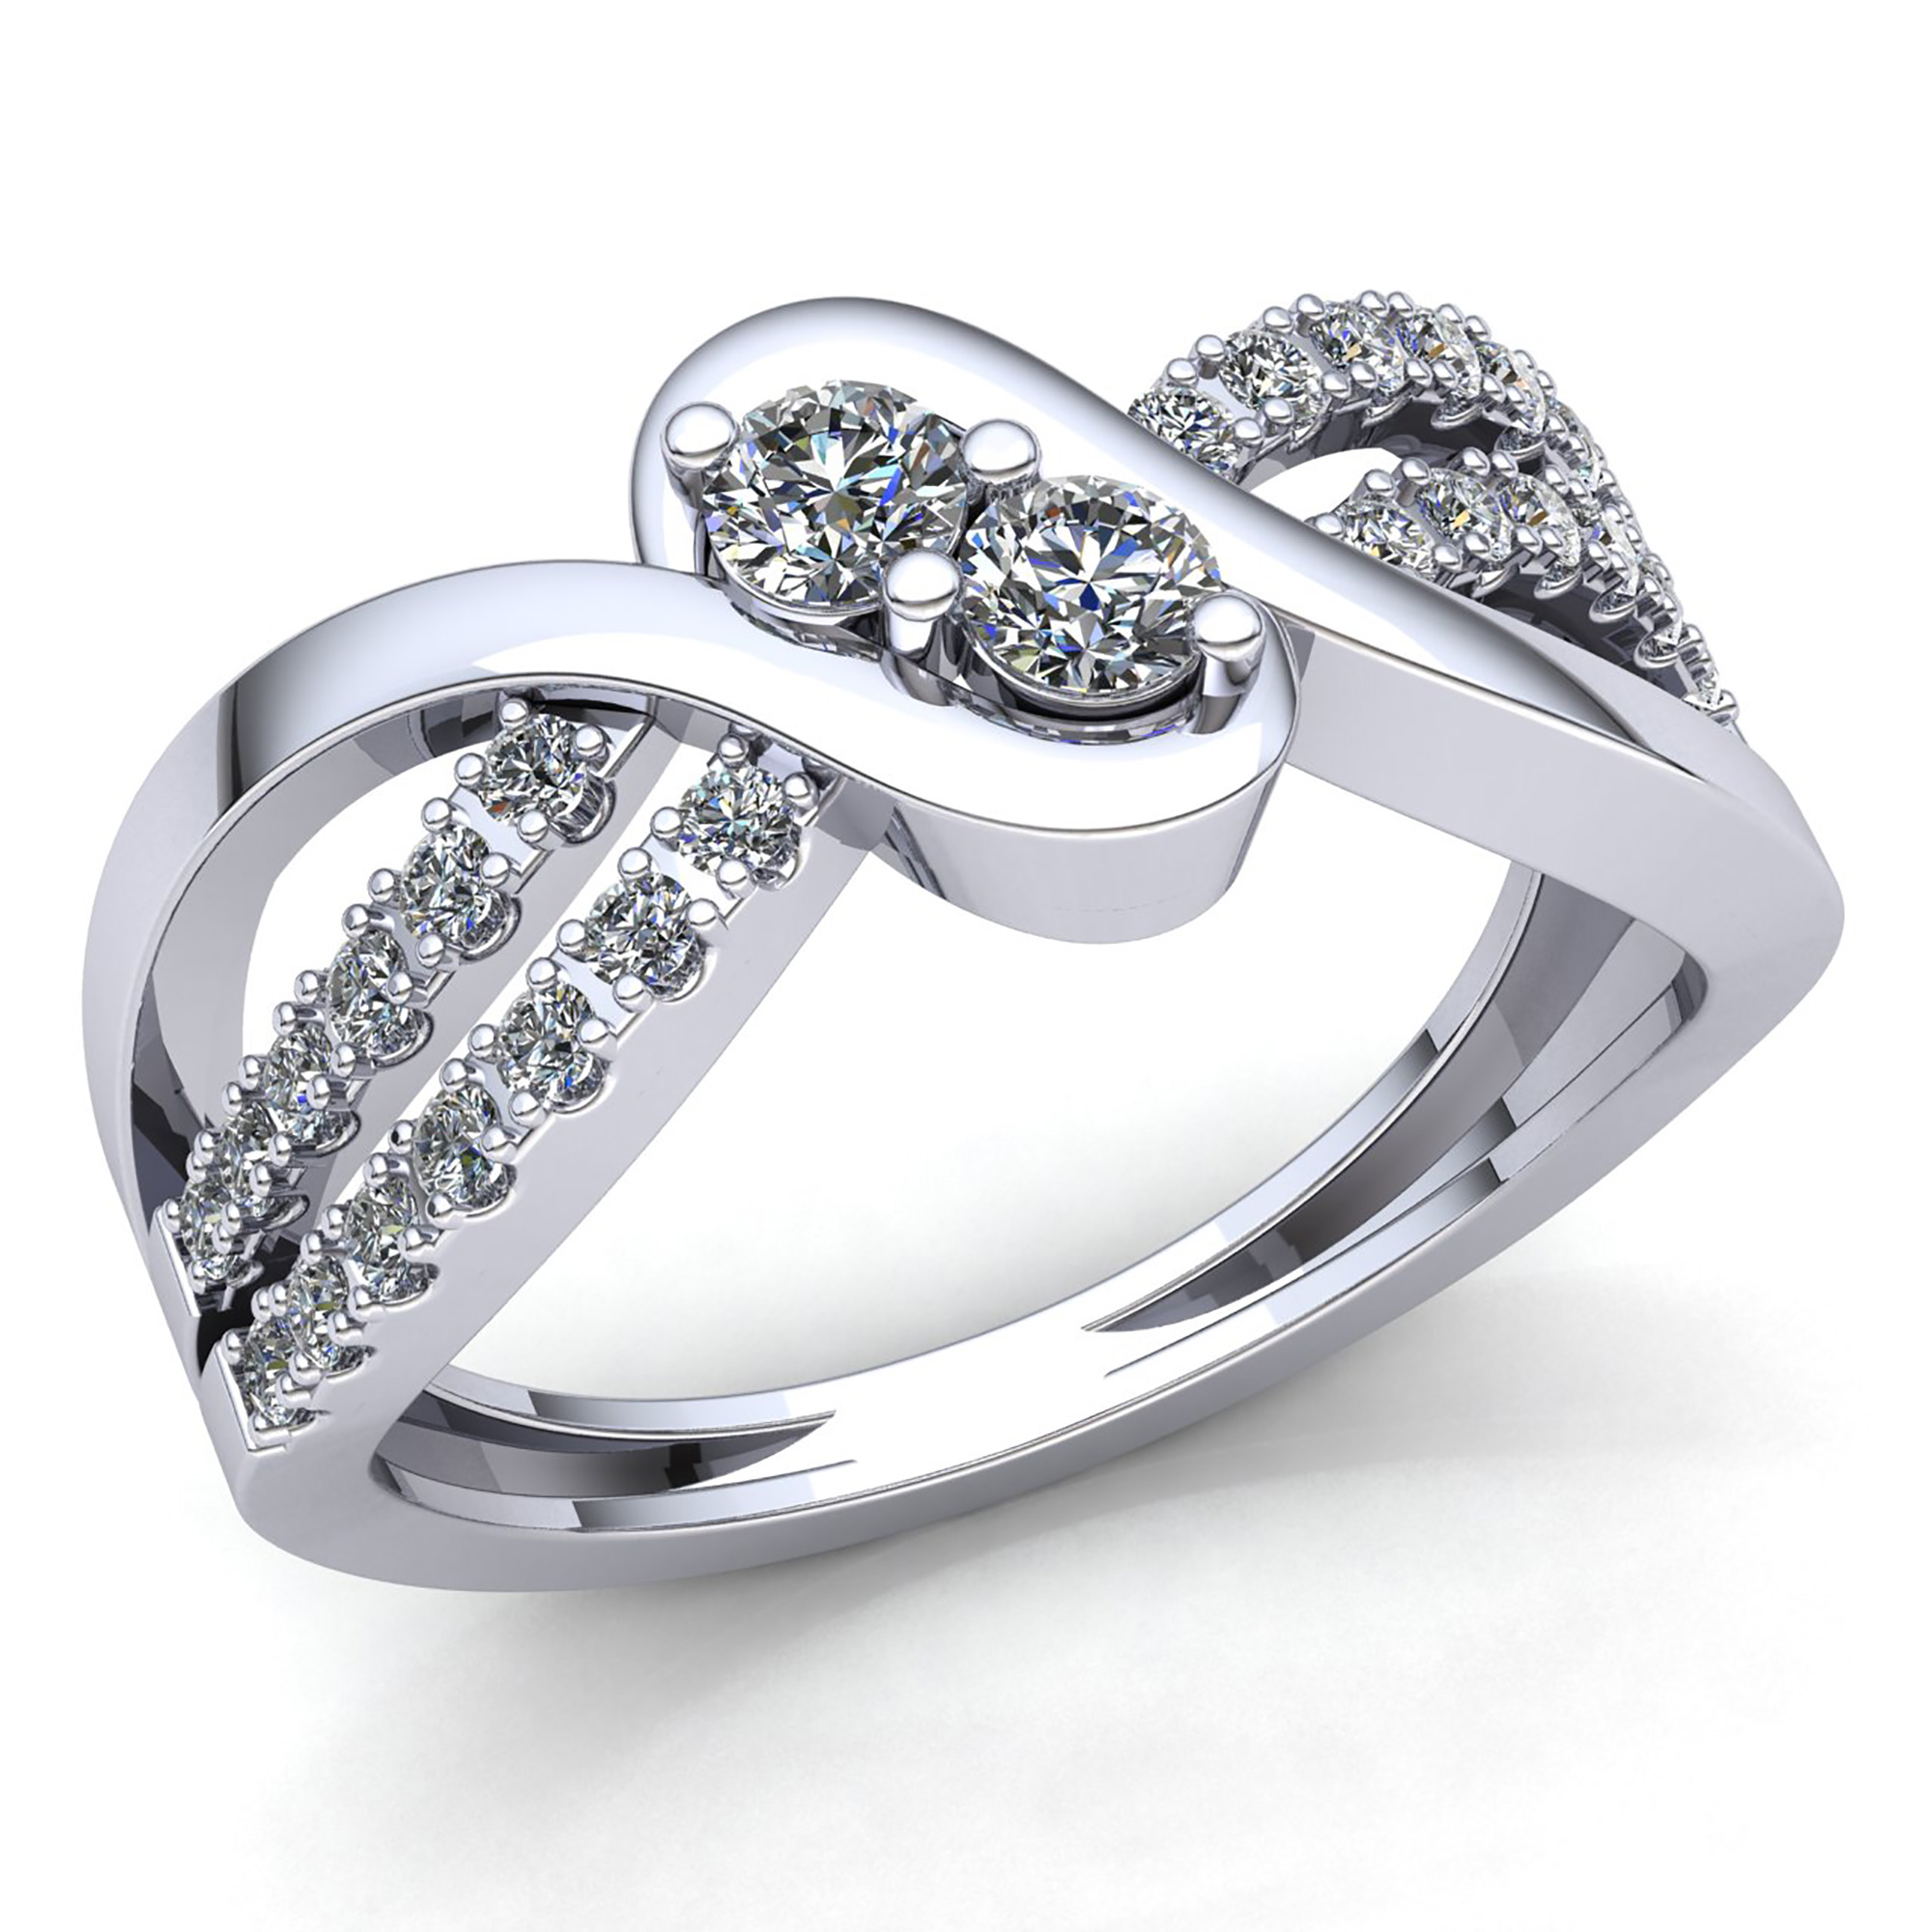 ring products diamond rings deals top collections cluster set gold jewelry channel stone wedding ct engagement